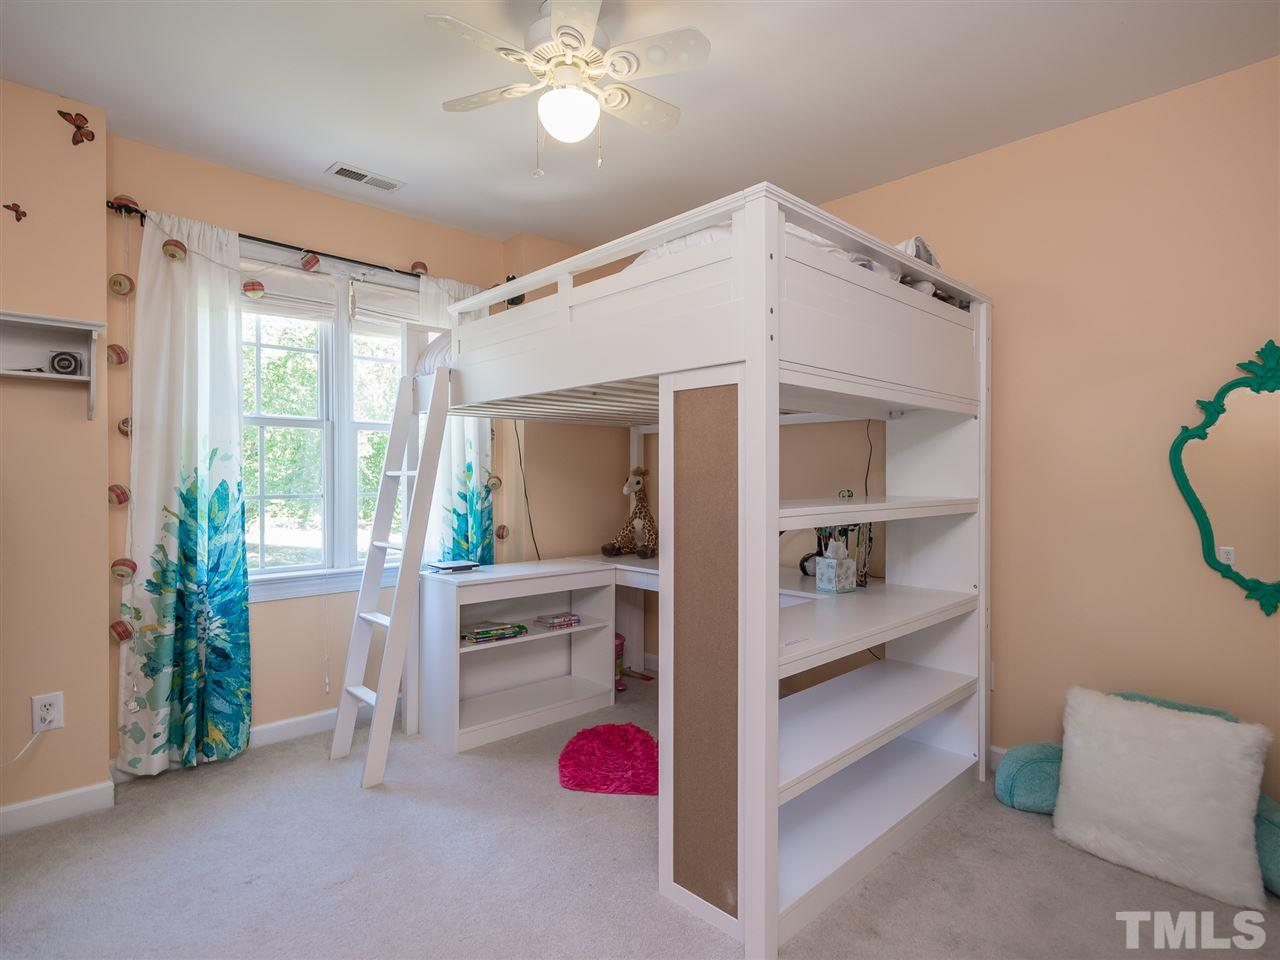 One of two secondary bedrooms - enough space for the bunk beds or a teen room. The closet has been customized to maximize your storage needs.